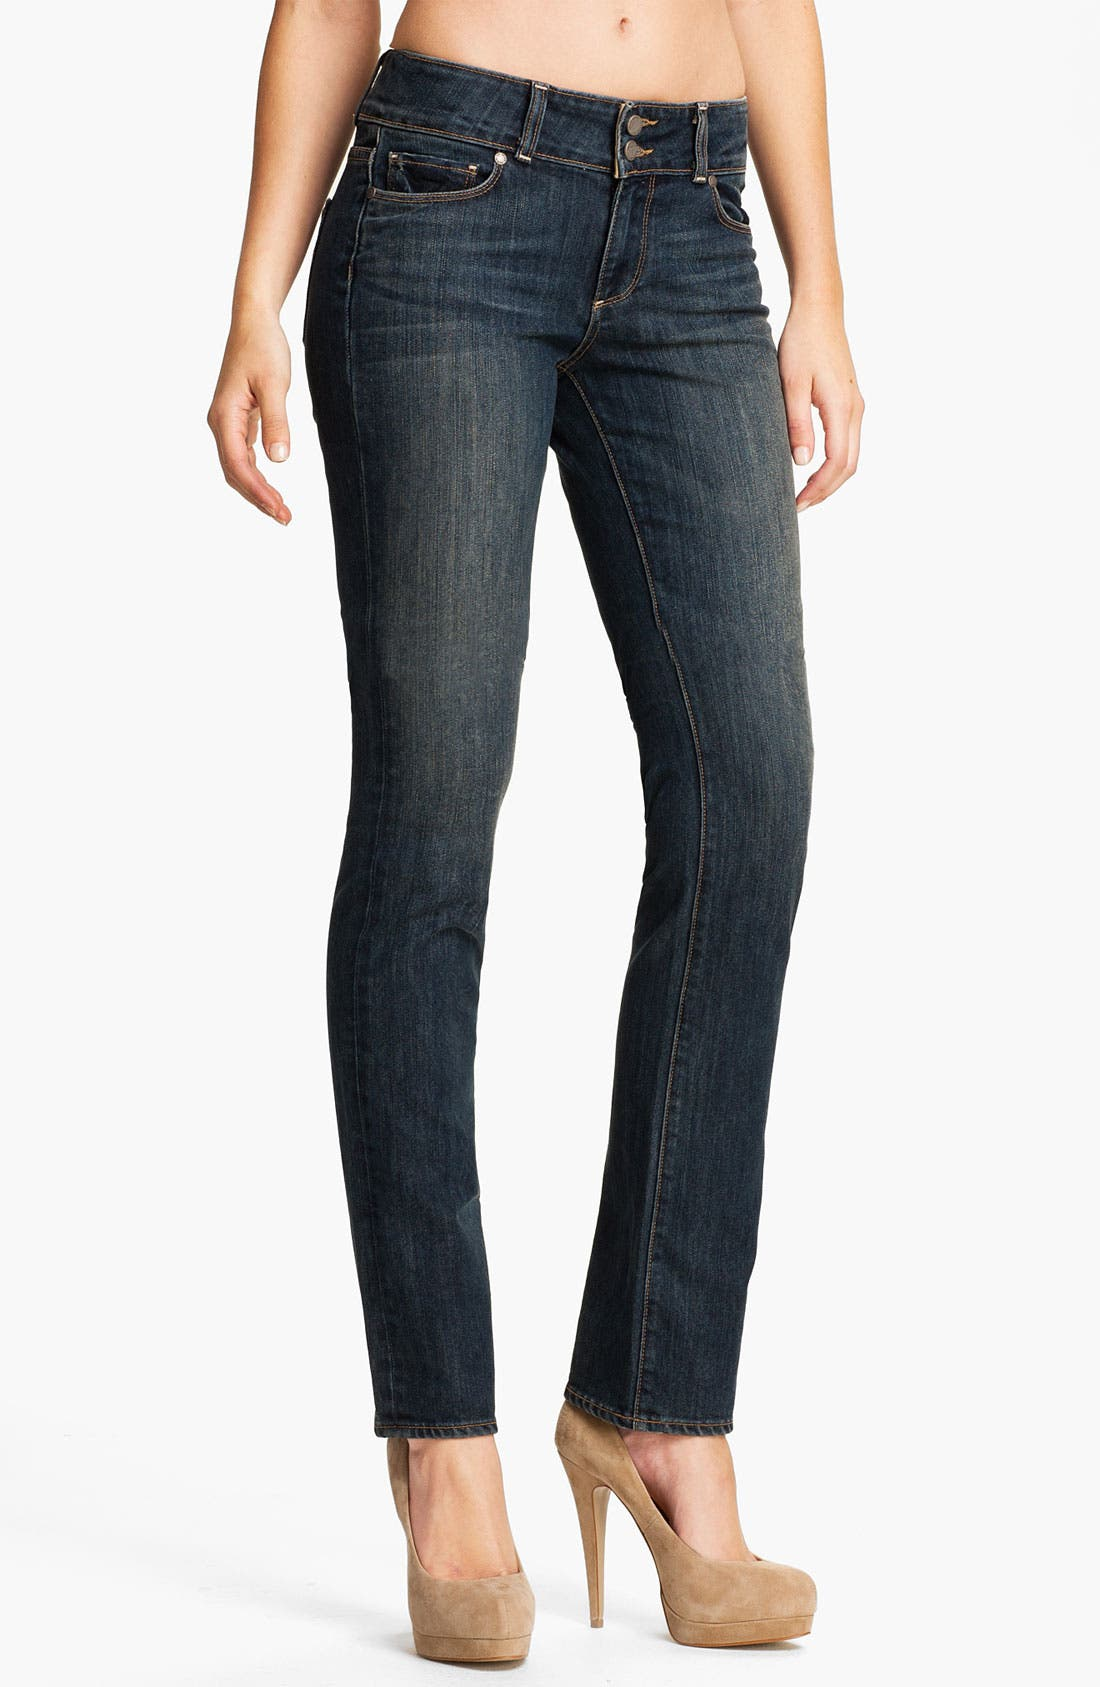 Alternate Image 1 Selected - Paige Denim 'Hidden Hills' Straight Leg Stretch Jeans (Cottonwood Creek)